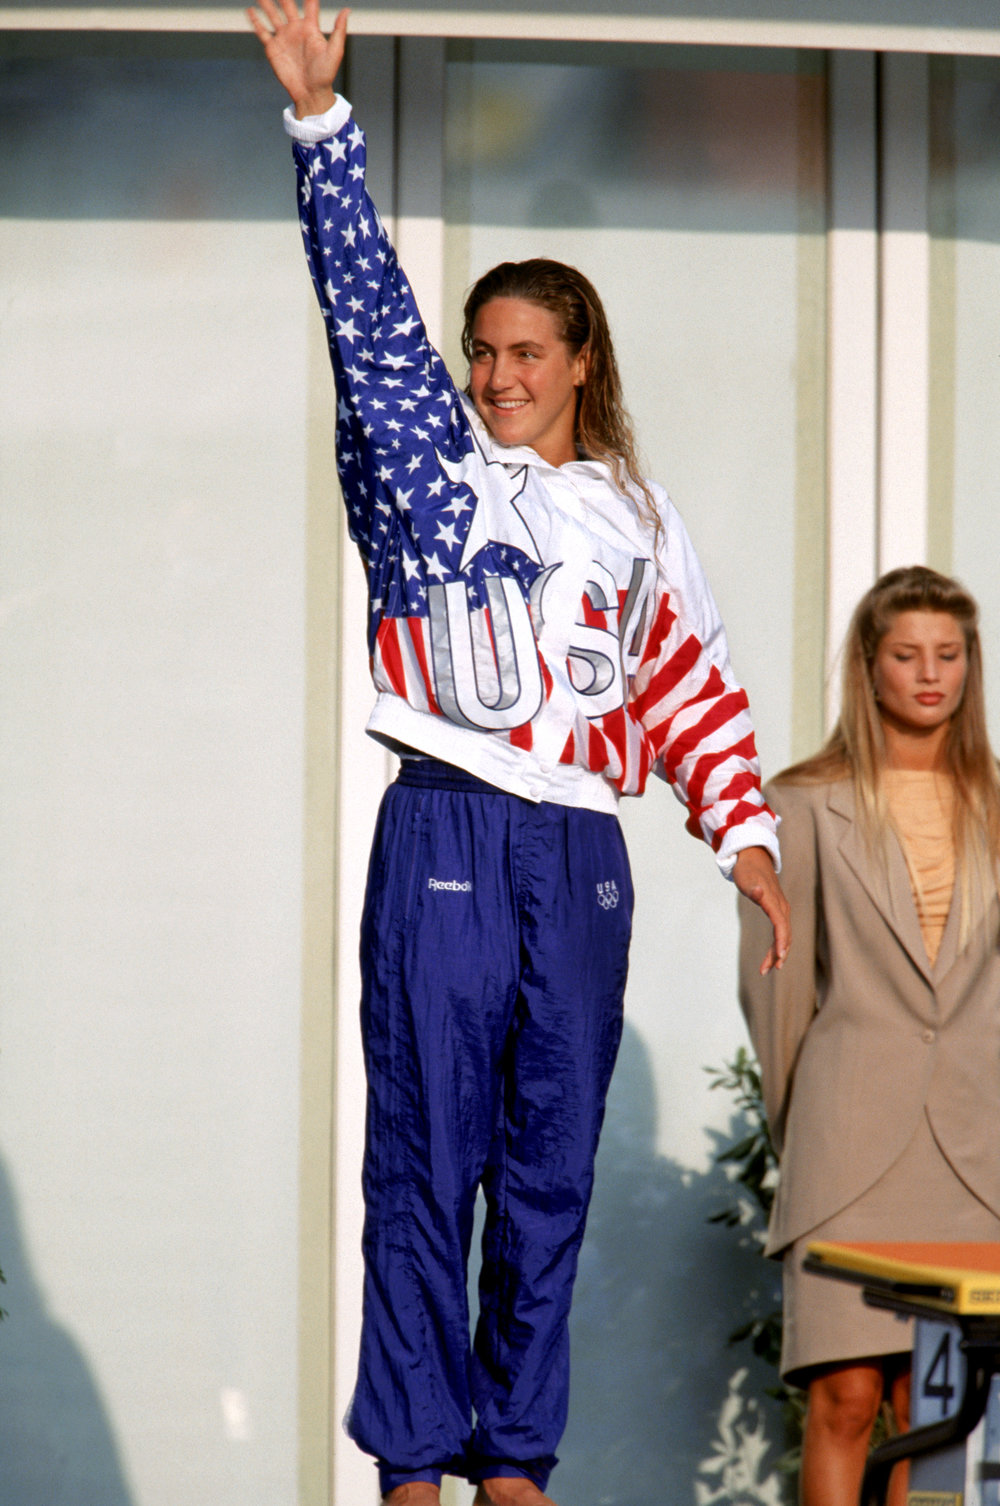 Olympic Gold - An incredible moment in my life.